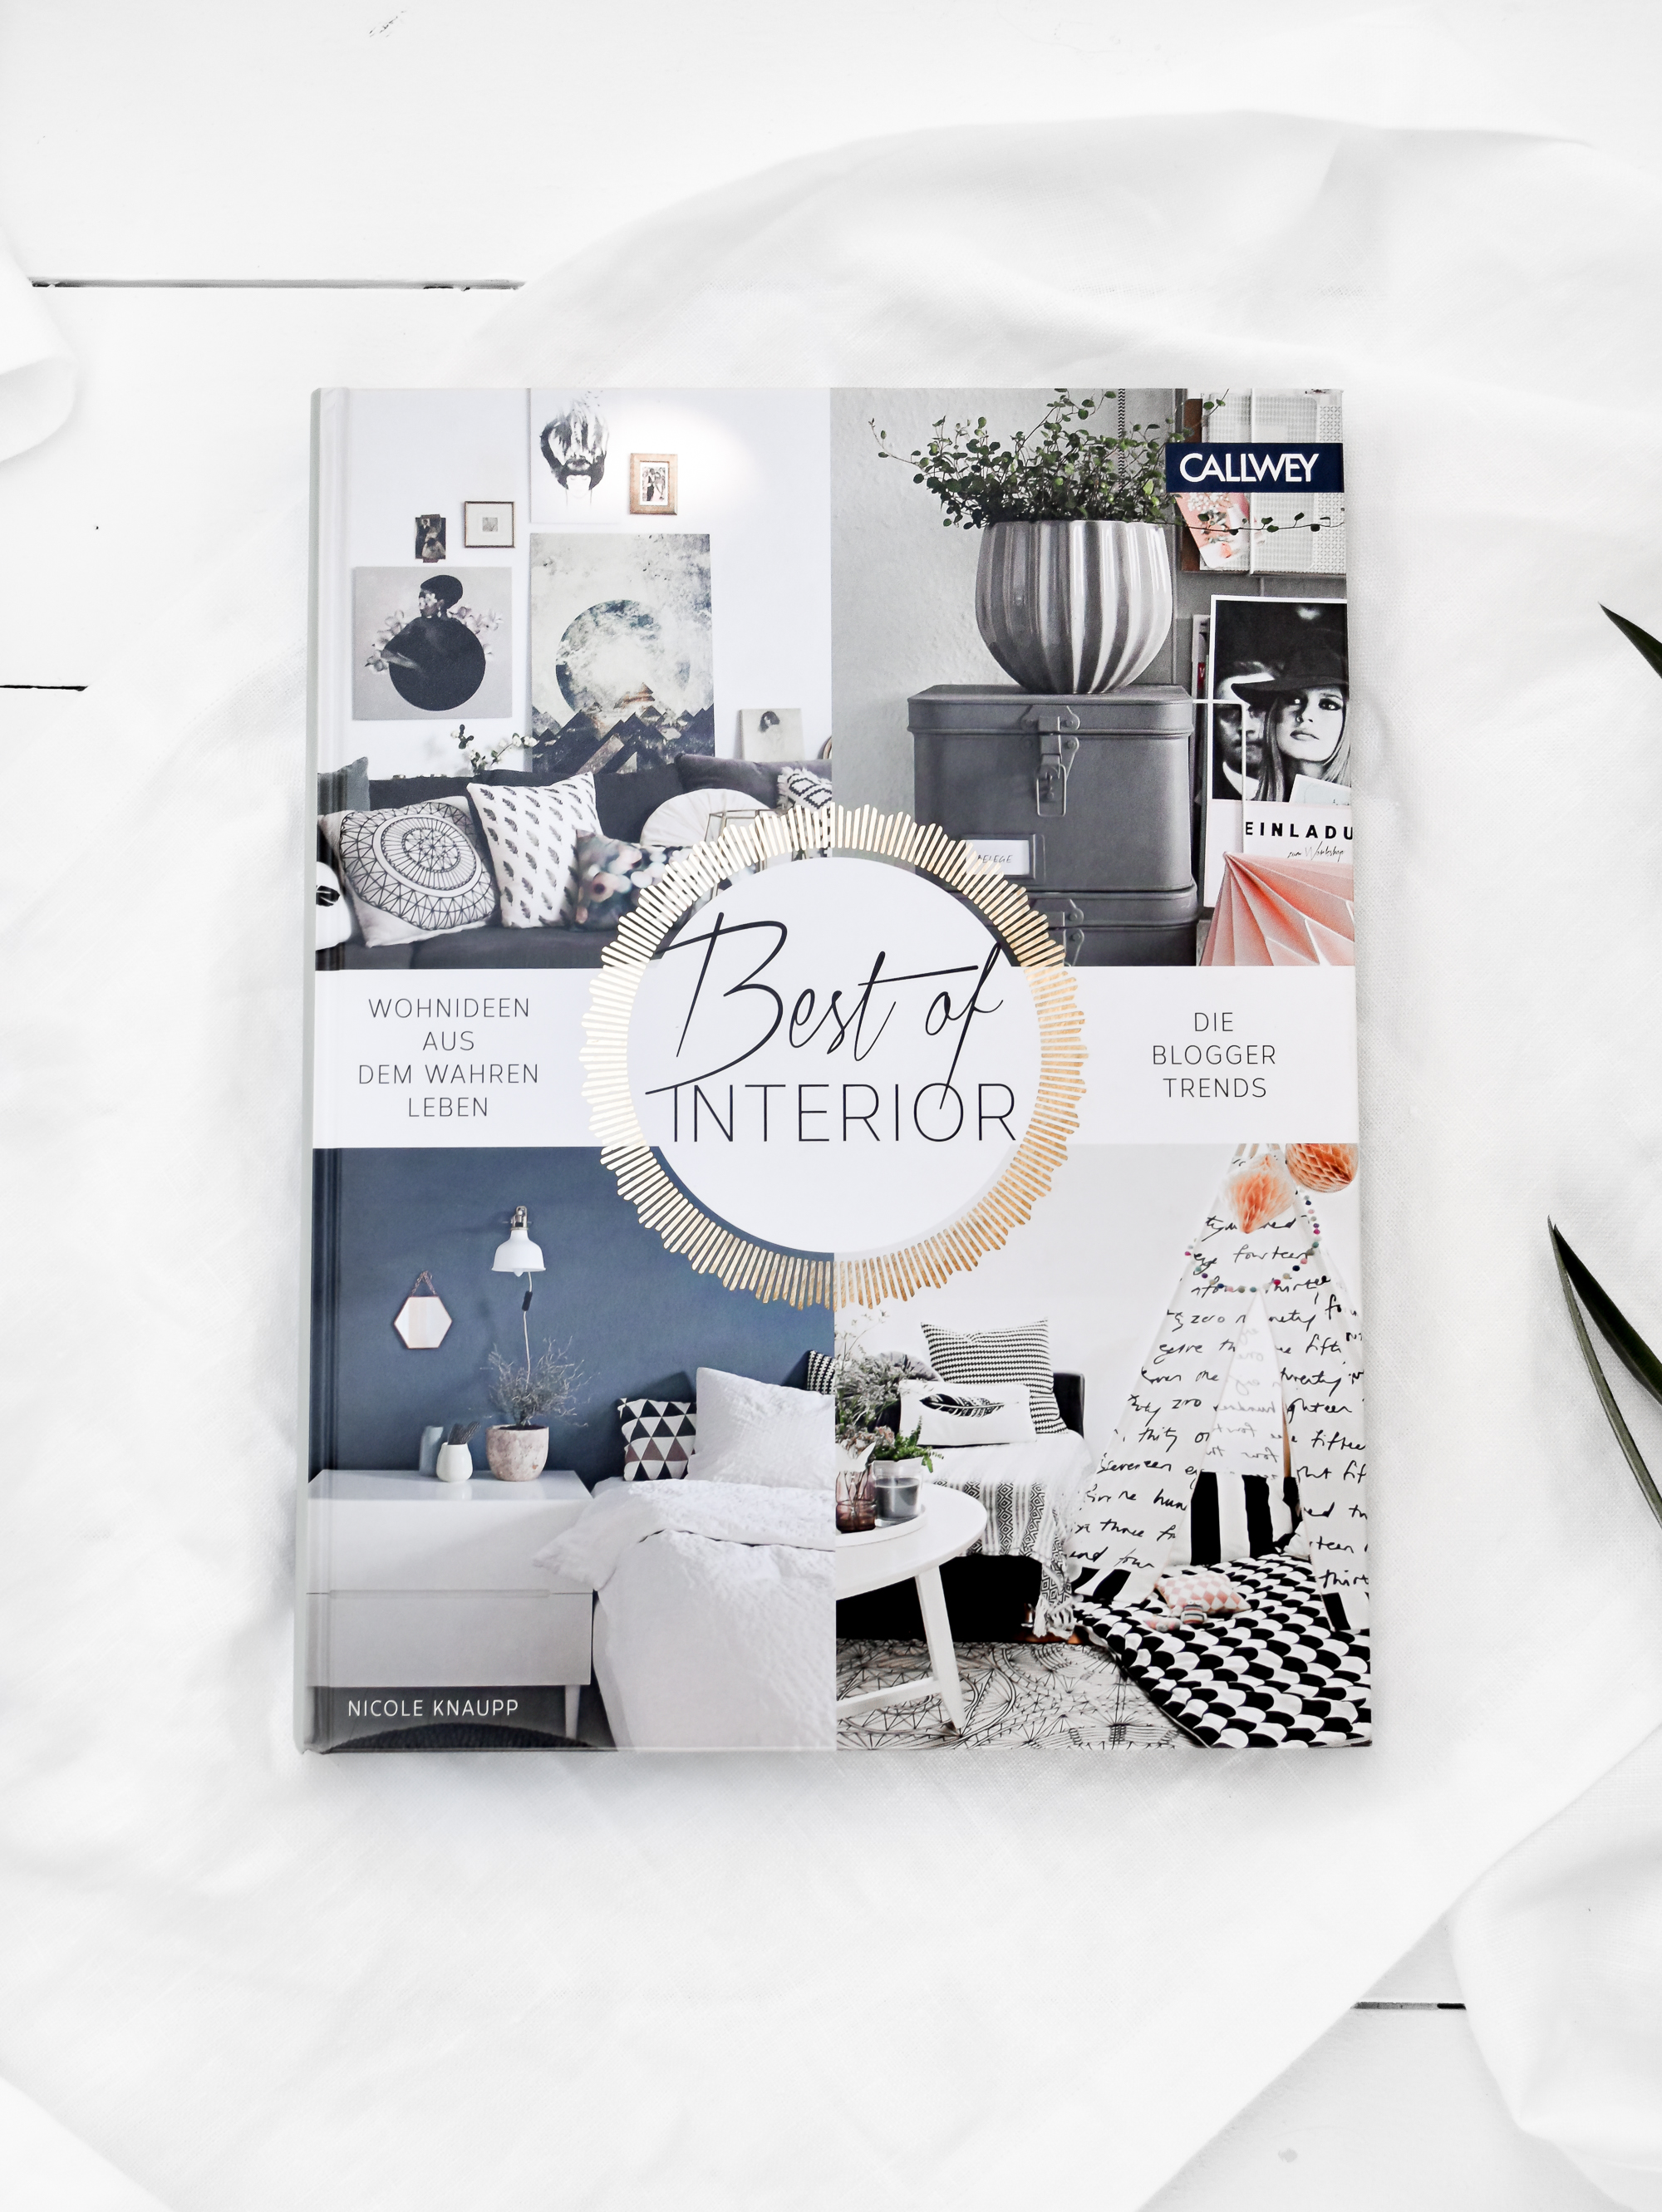 wohnideen und lifestyle 2016, best of interior - bloggers trends' book, Design ideen